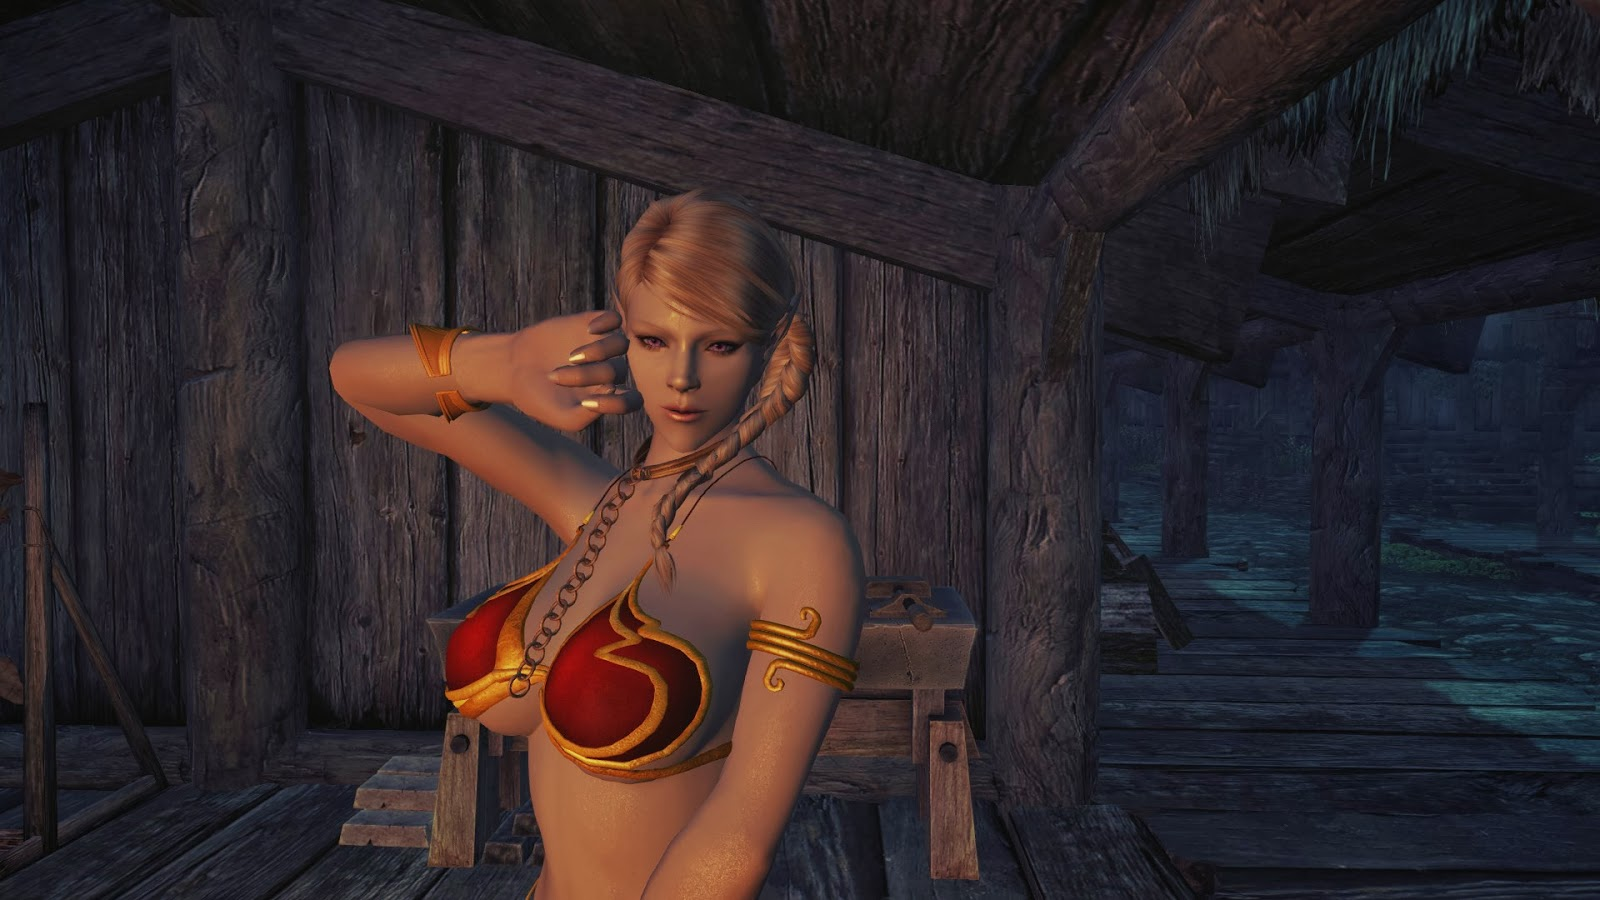 Skyrim nude mod small smut clips